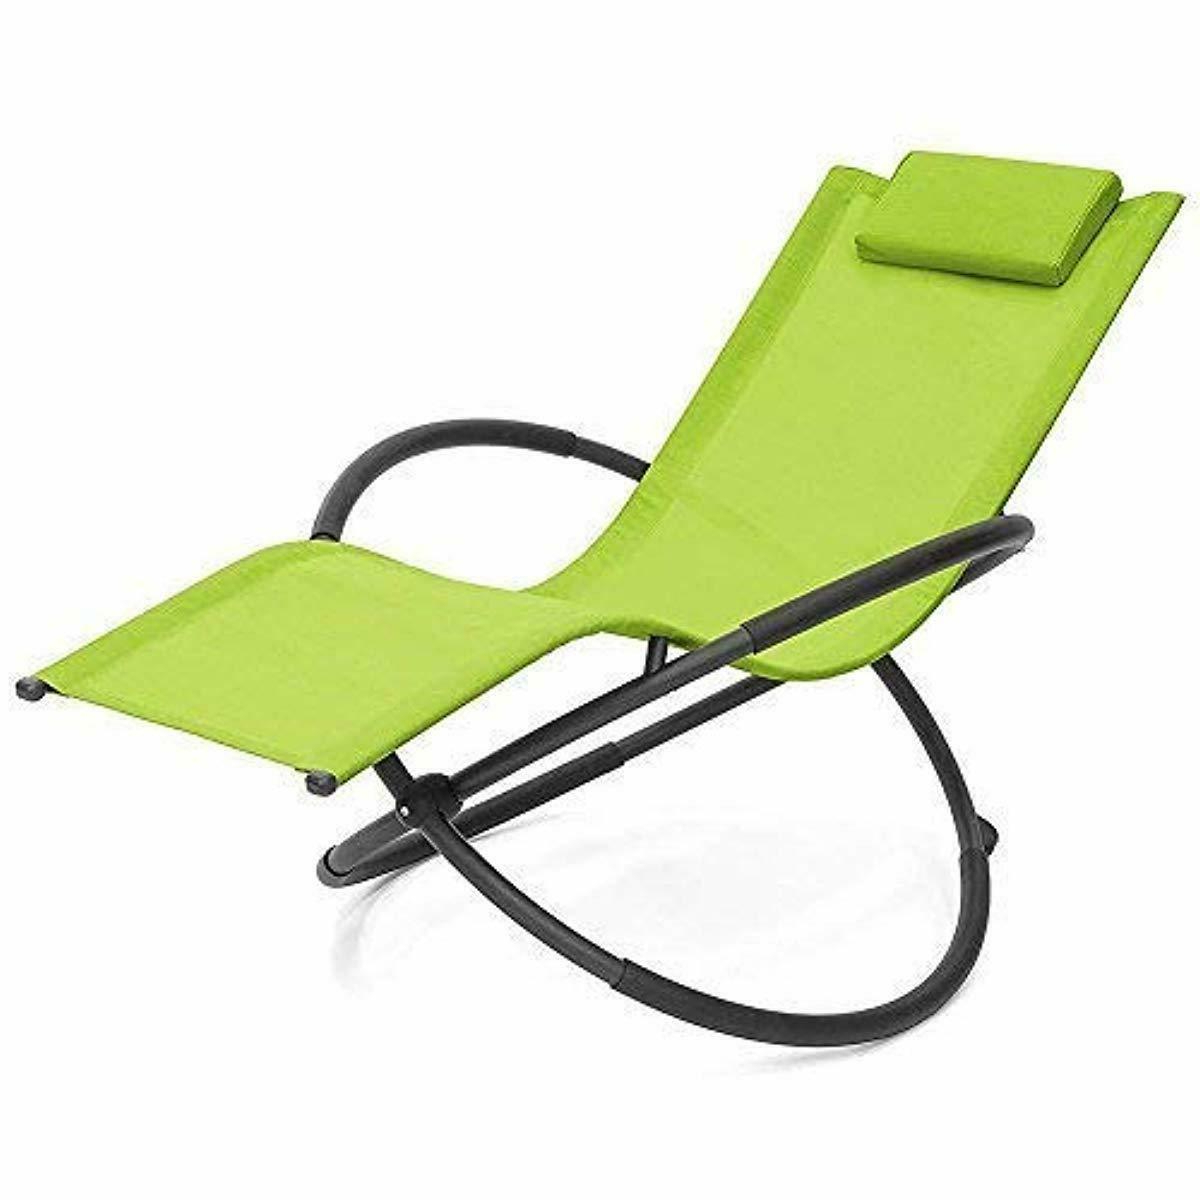 2019 Details About Grearden Outdoor Lounge Chair Orbital Zero Gravity Patio  Chaise Lounge Rocking L Intended For Orbital Patio Lounger Rocking Chairs (View 1 of 25)